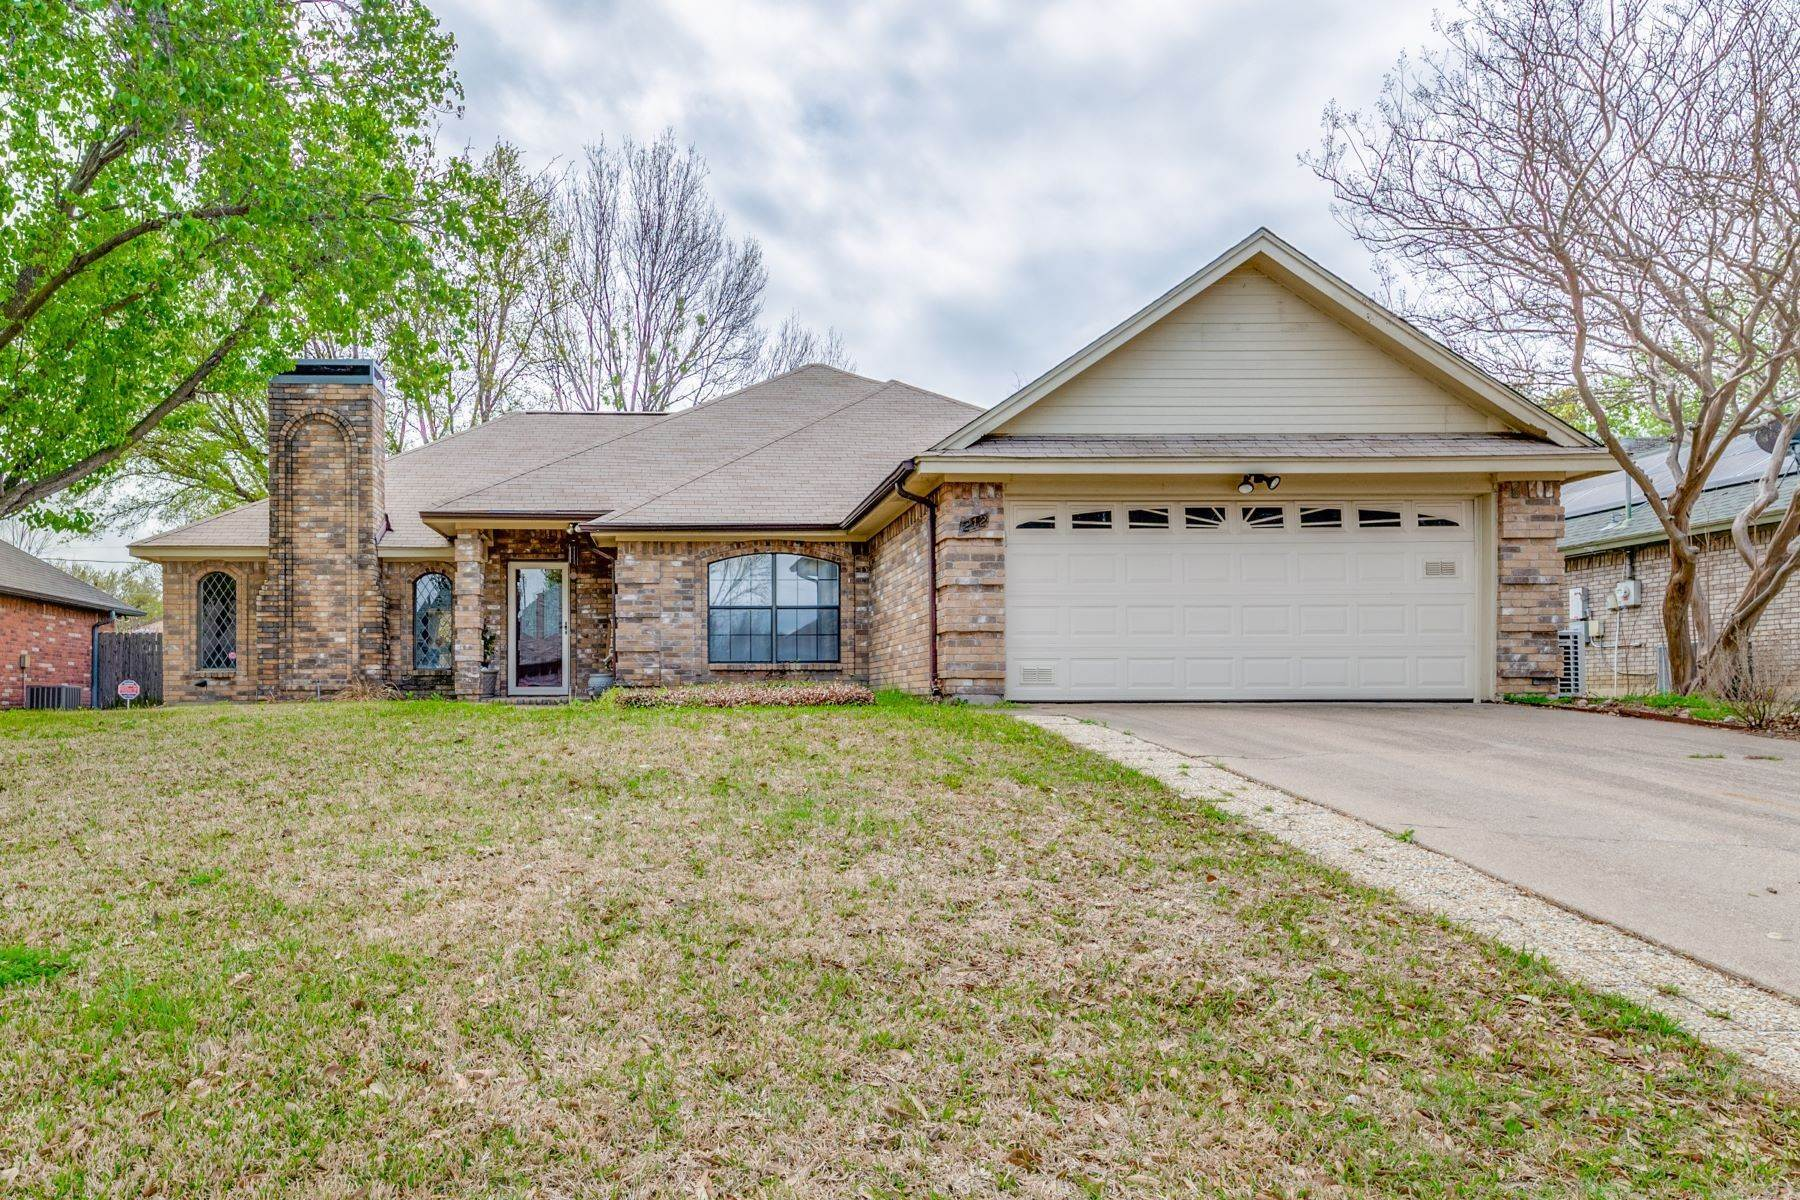 Single Family Homes for Sale at 212 Timber Creek Drive, Burleson, TX, 76028 212 Timber Creek Drive Burleson, Texas 76028 United States